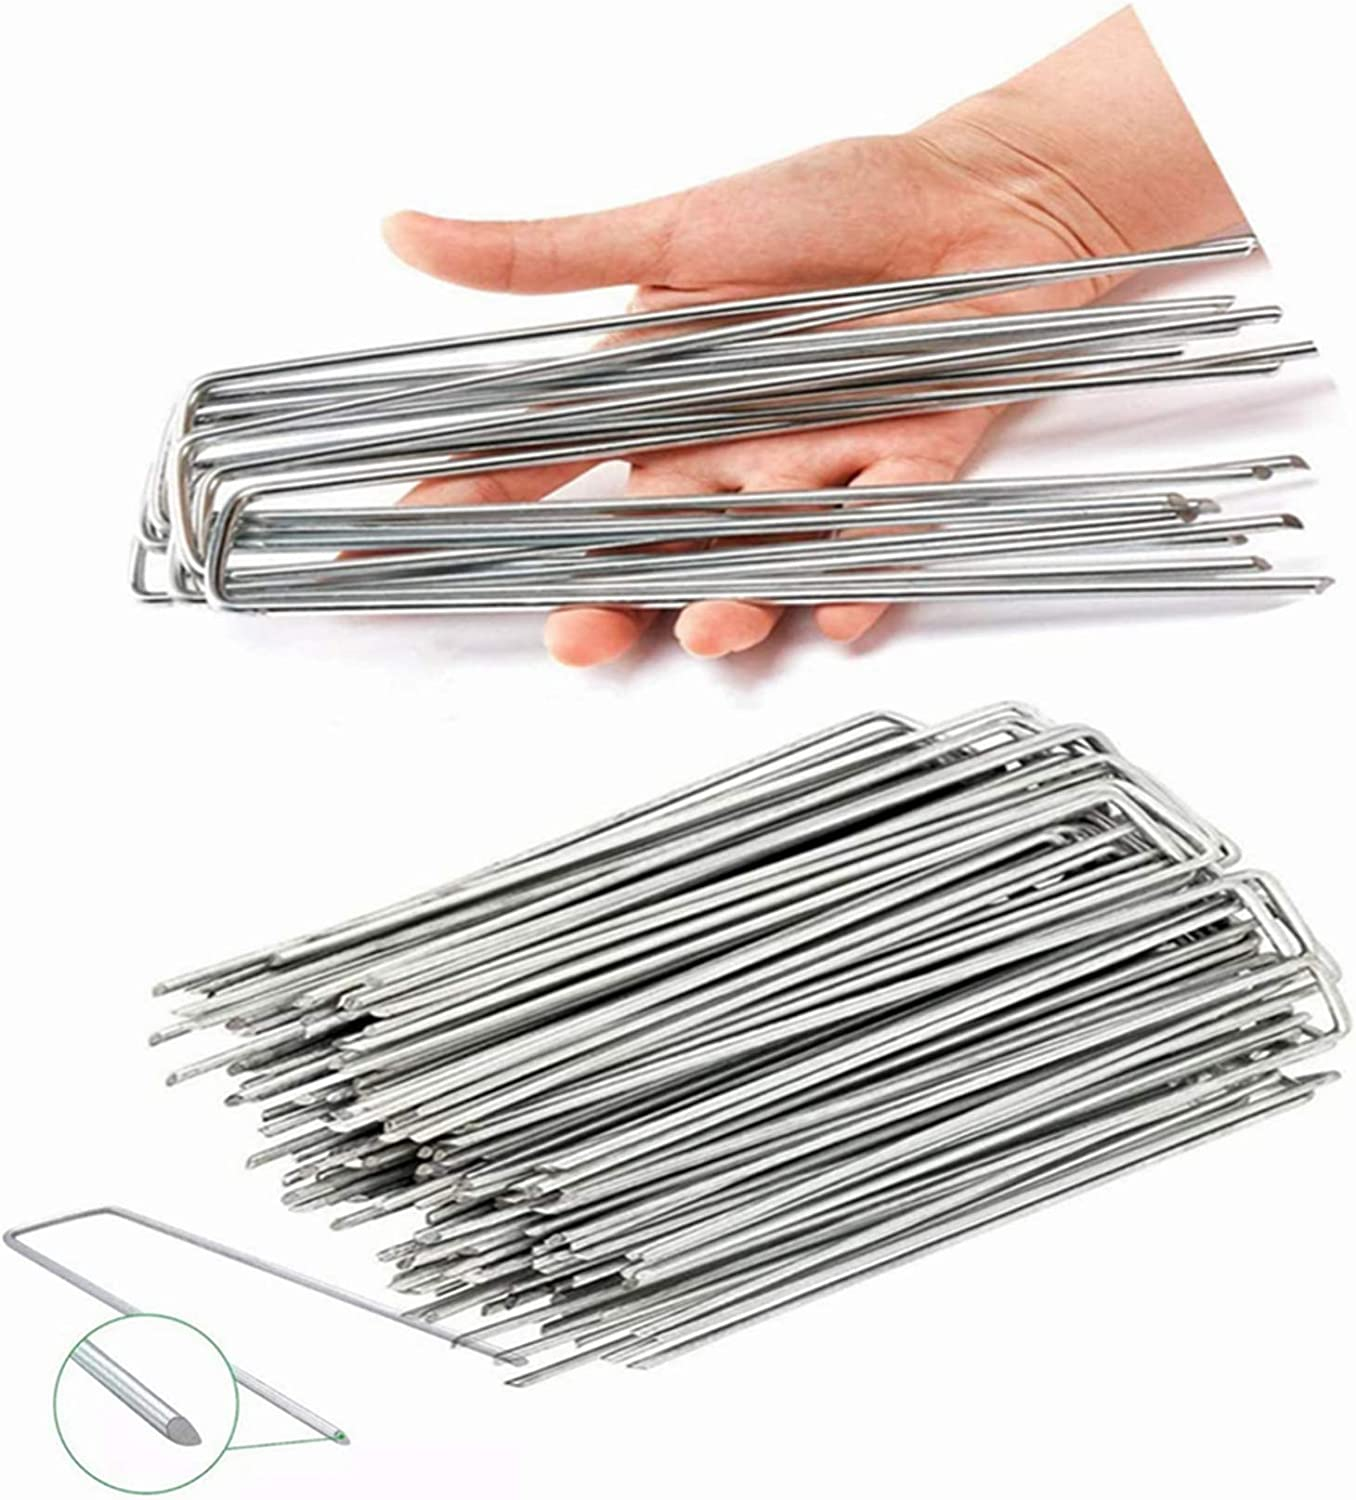 20PCS Garden Stakes Rust Resistant 8 Inch 4MM Diameter Landscape Staples Heavy-Duty Garden Staples U-Shaped Galvanized Garden Stakes for Installation of Turf Ground Plant Stakes (Stainless Steel)